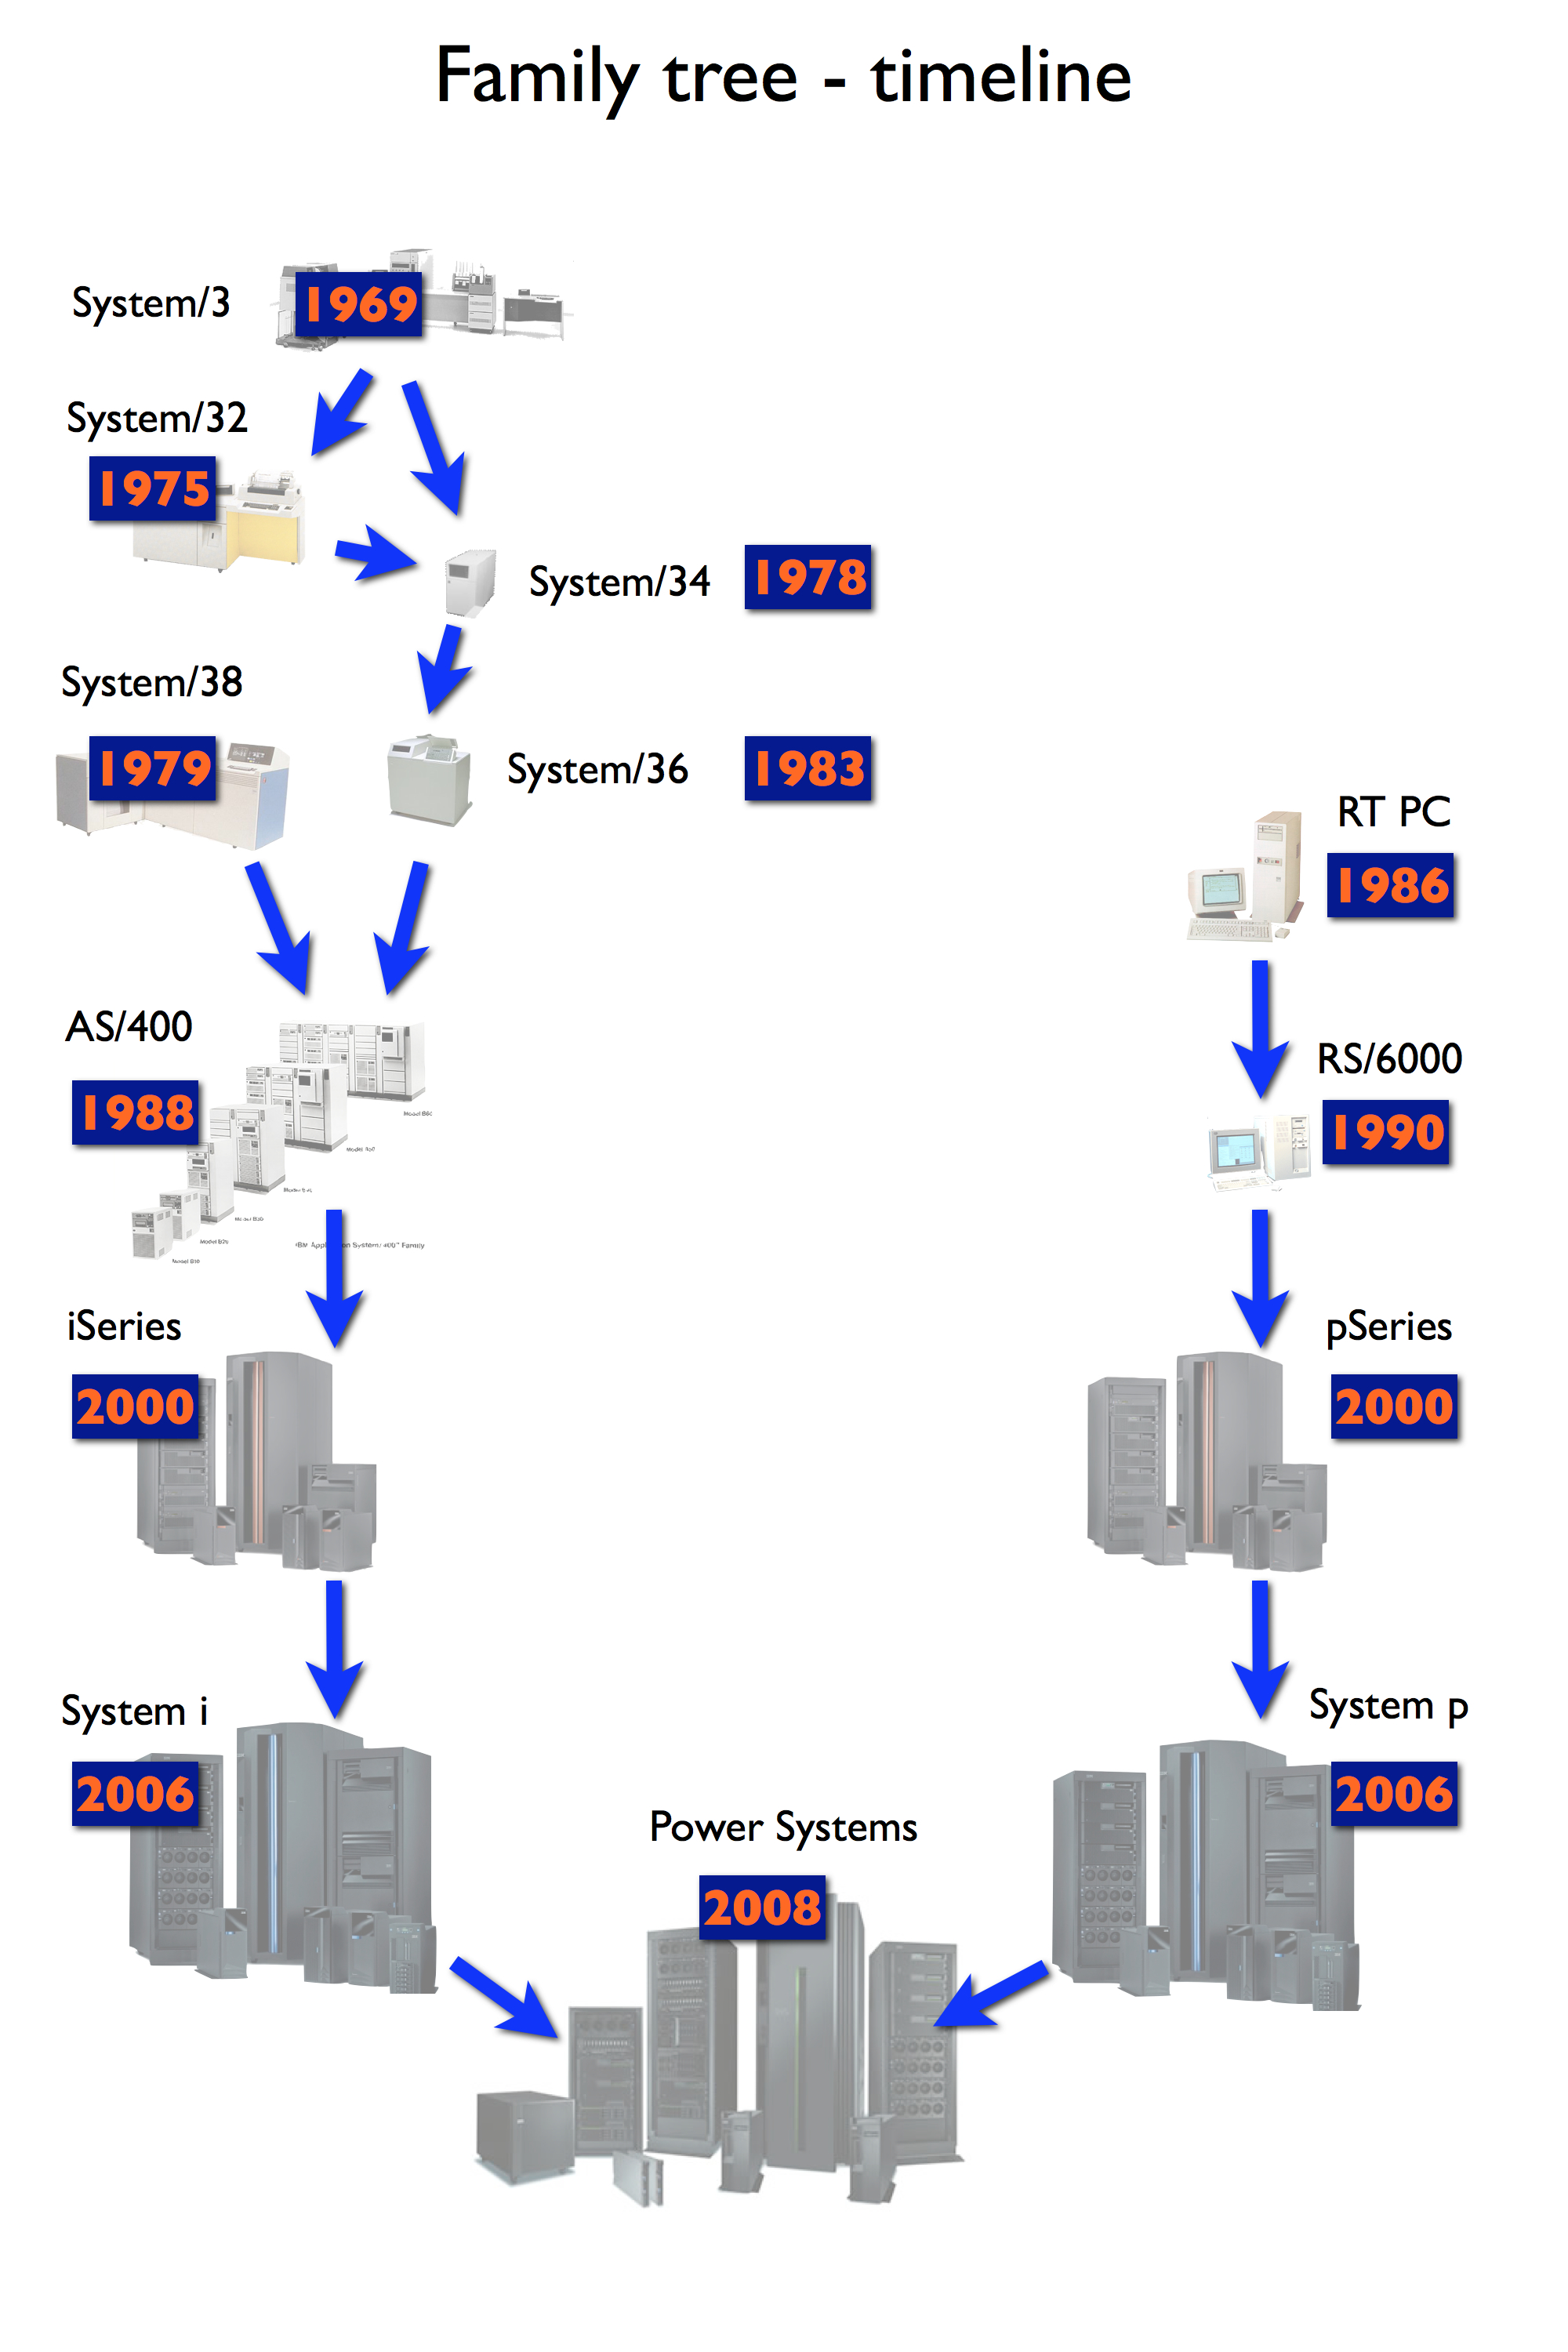 the ibm power system family tree i remember the ibm as400